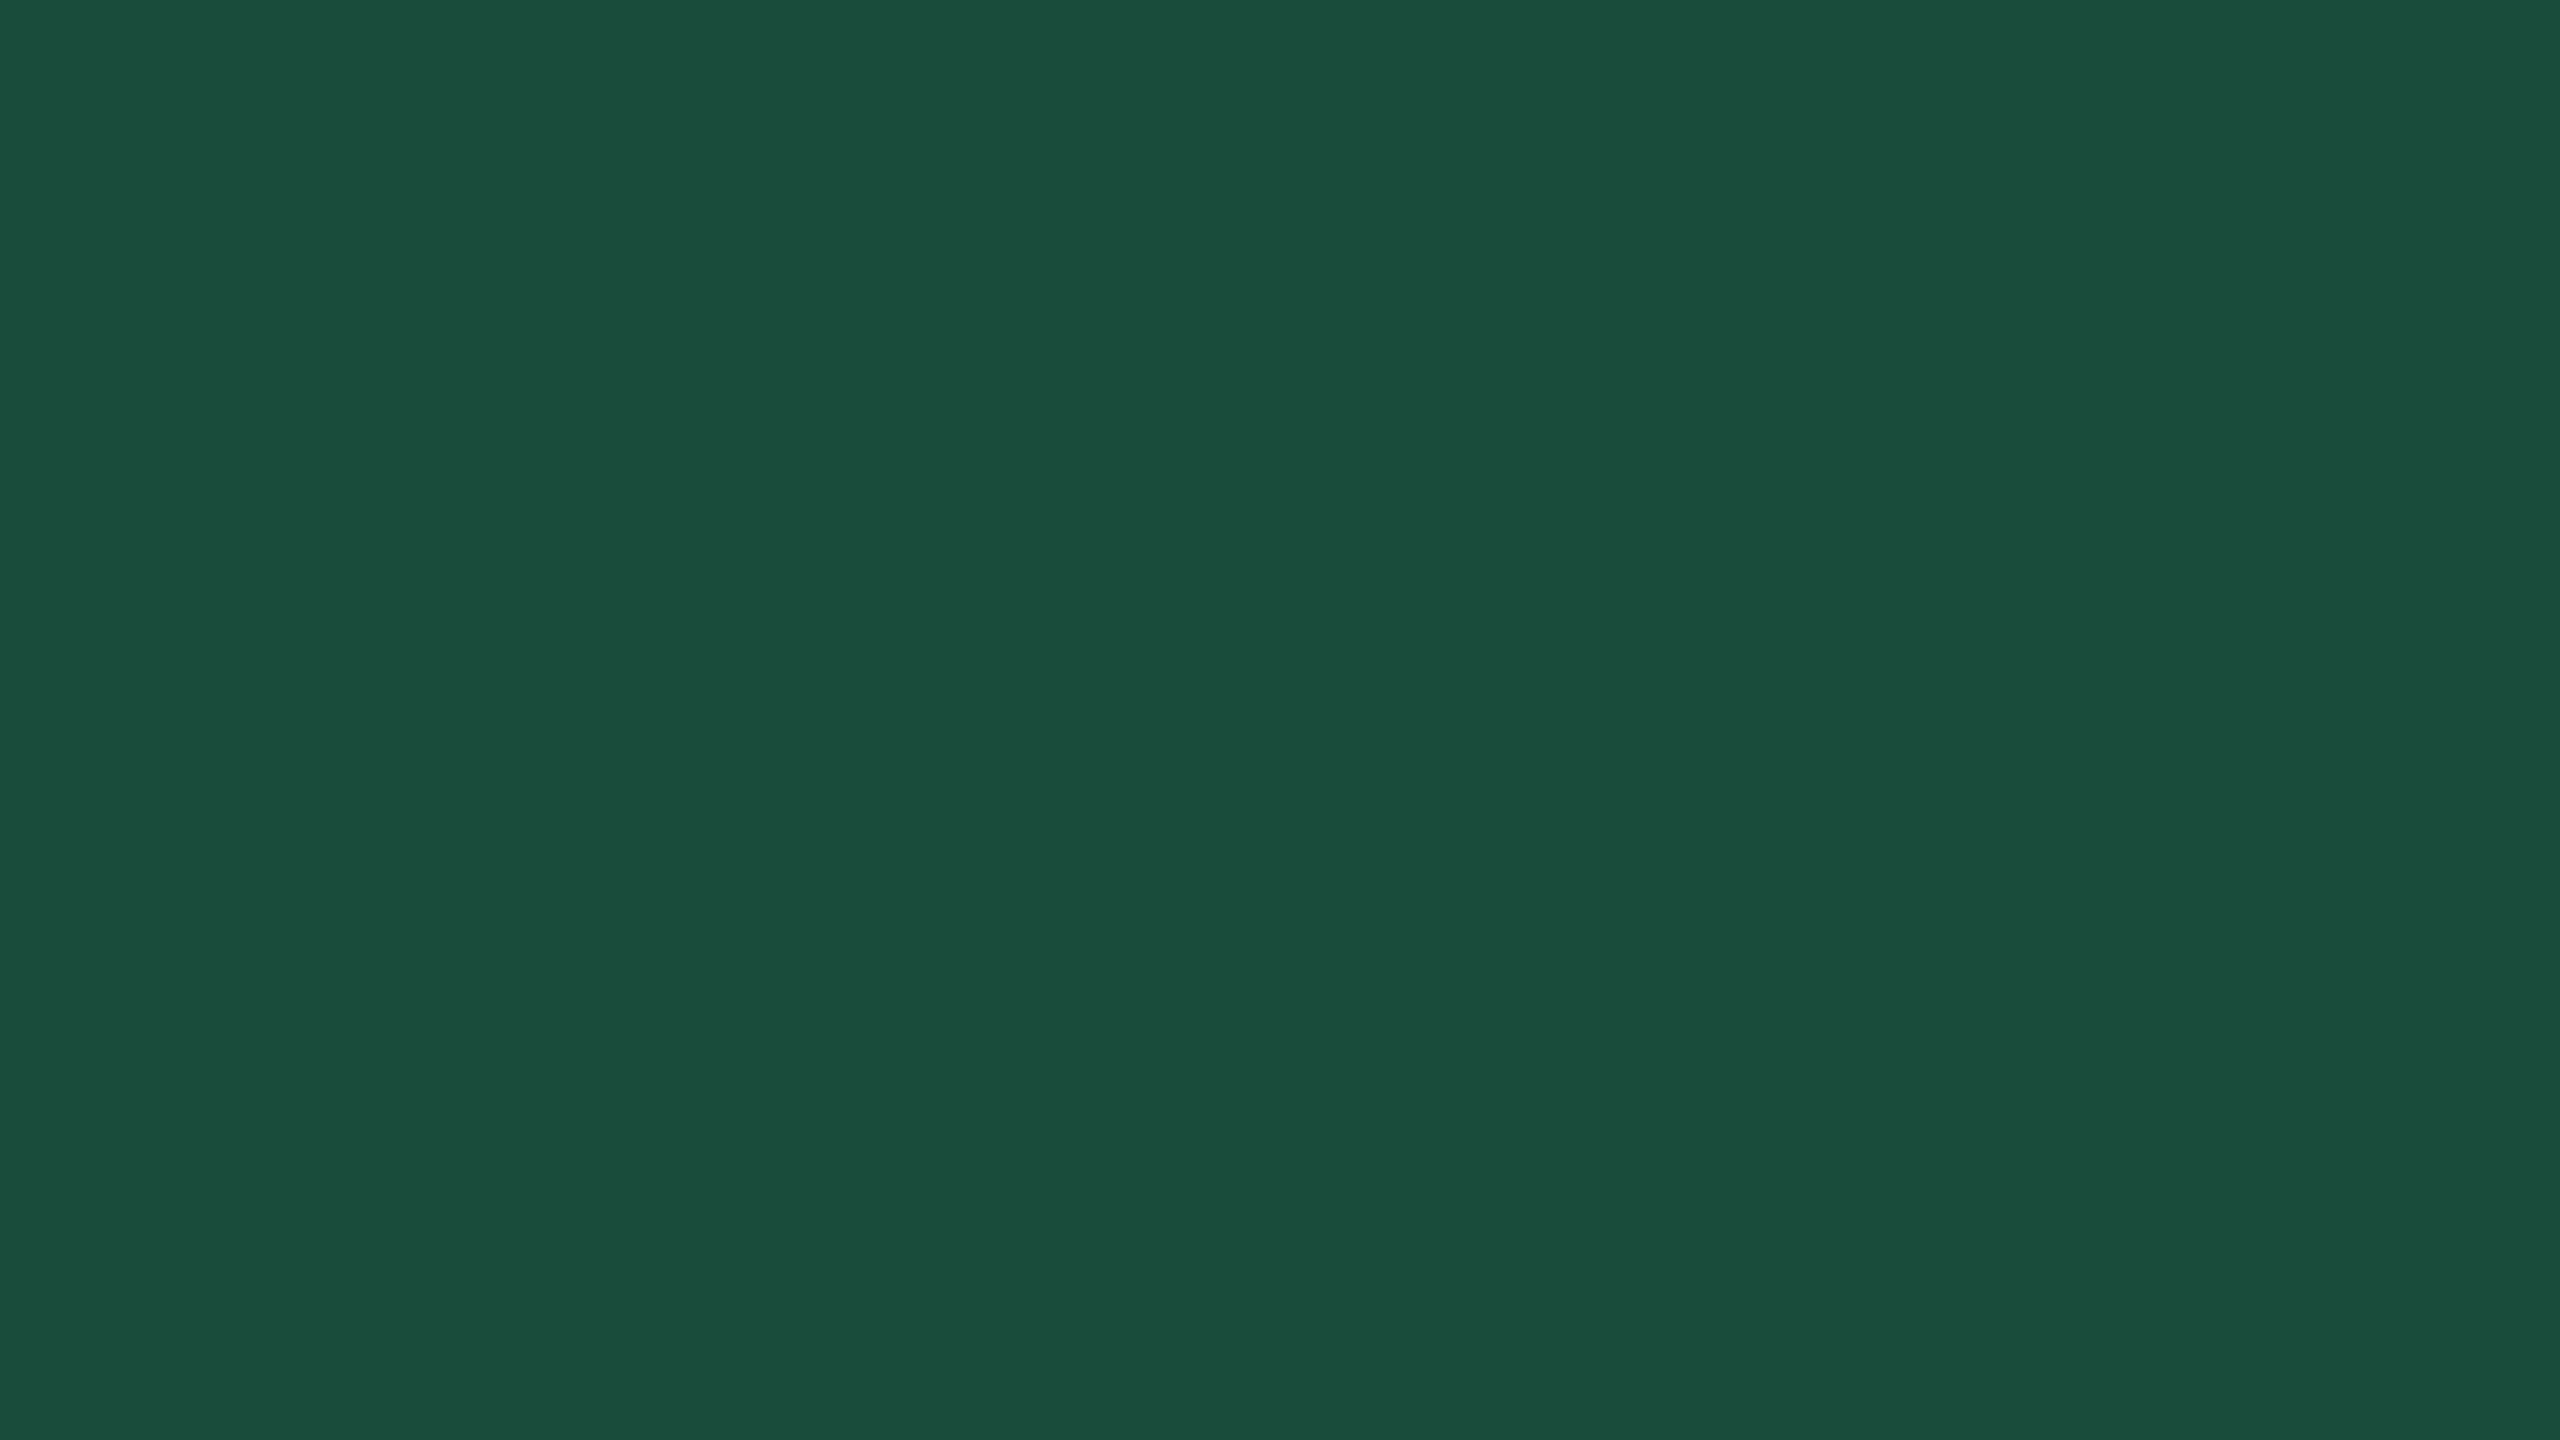 2560x1440 Brunswick Green Solid Color Background